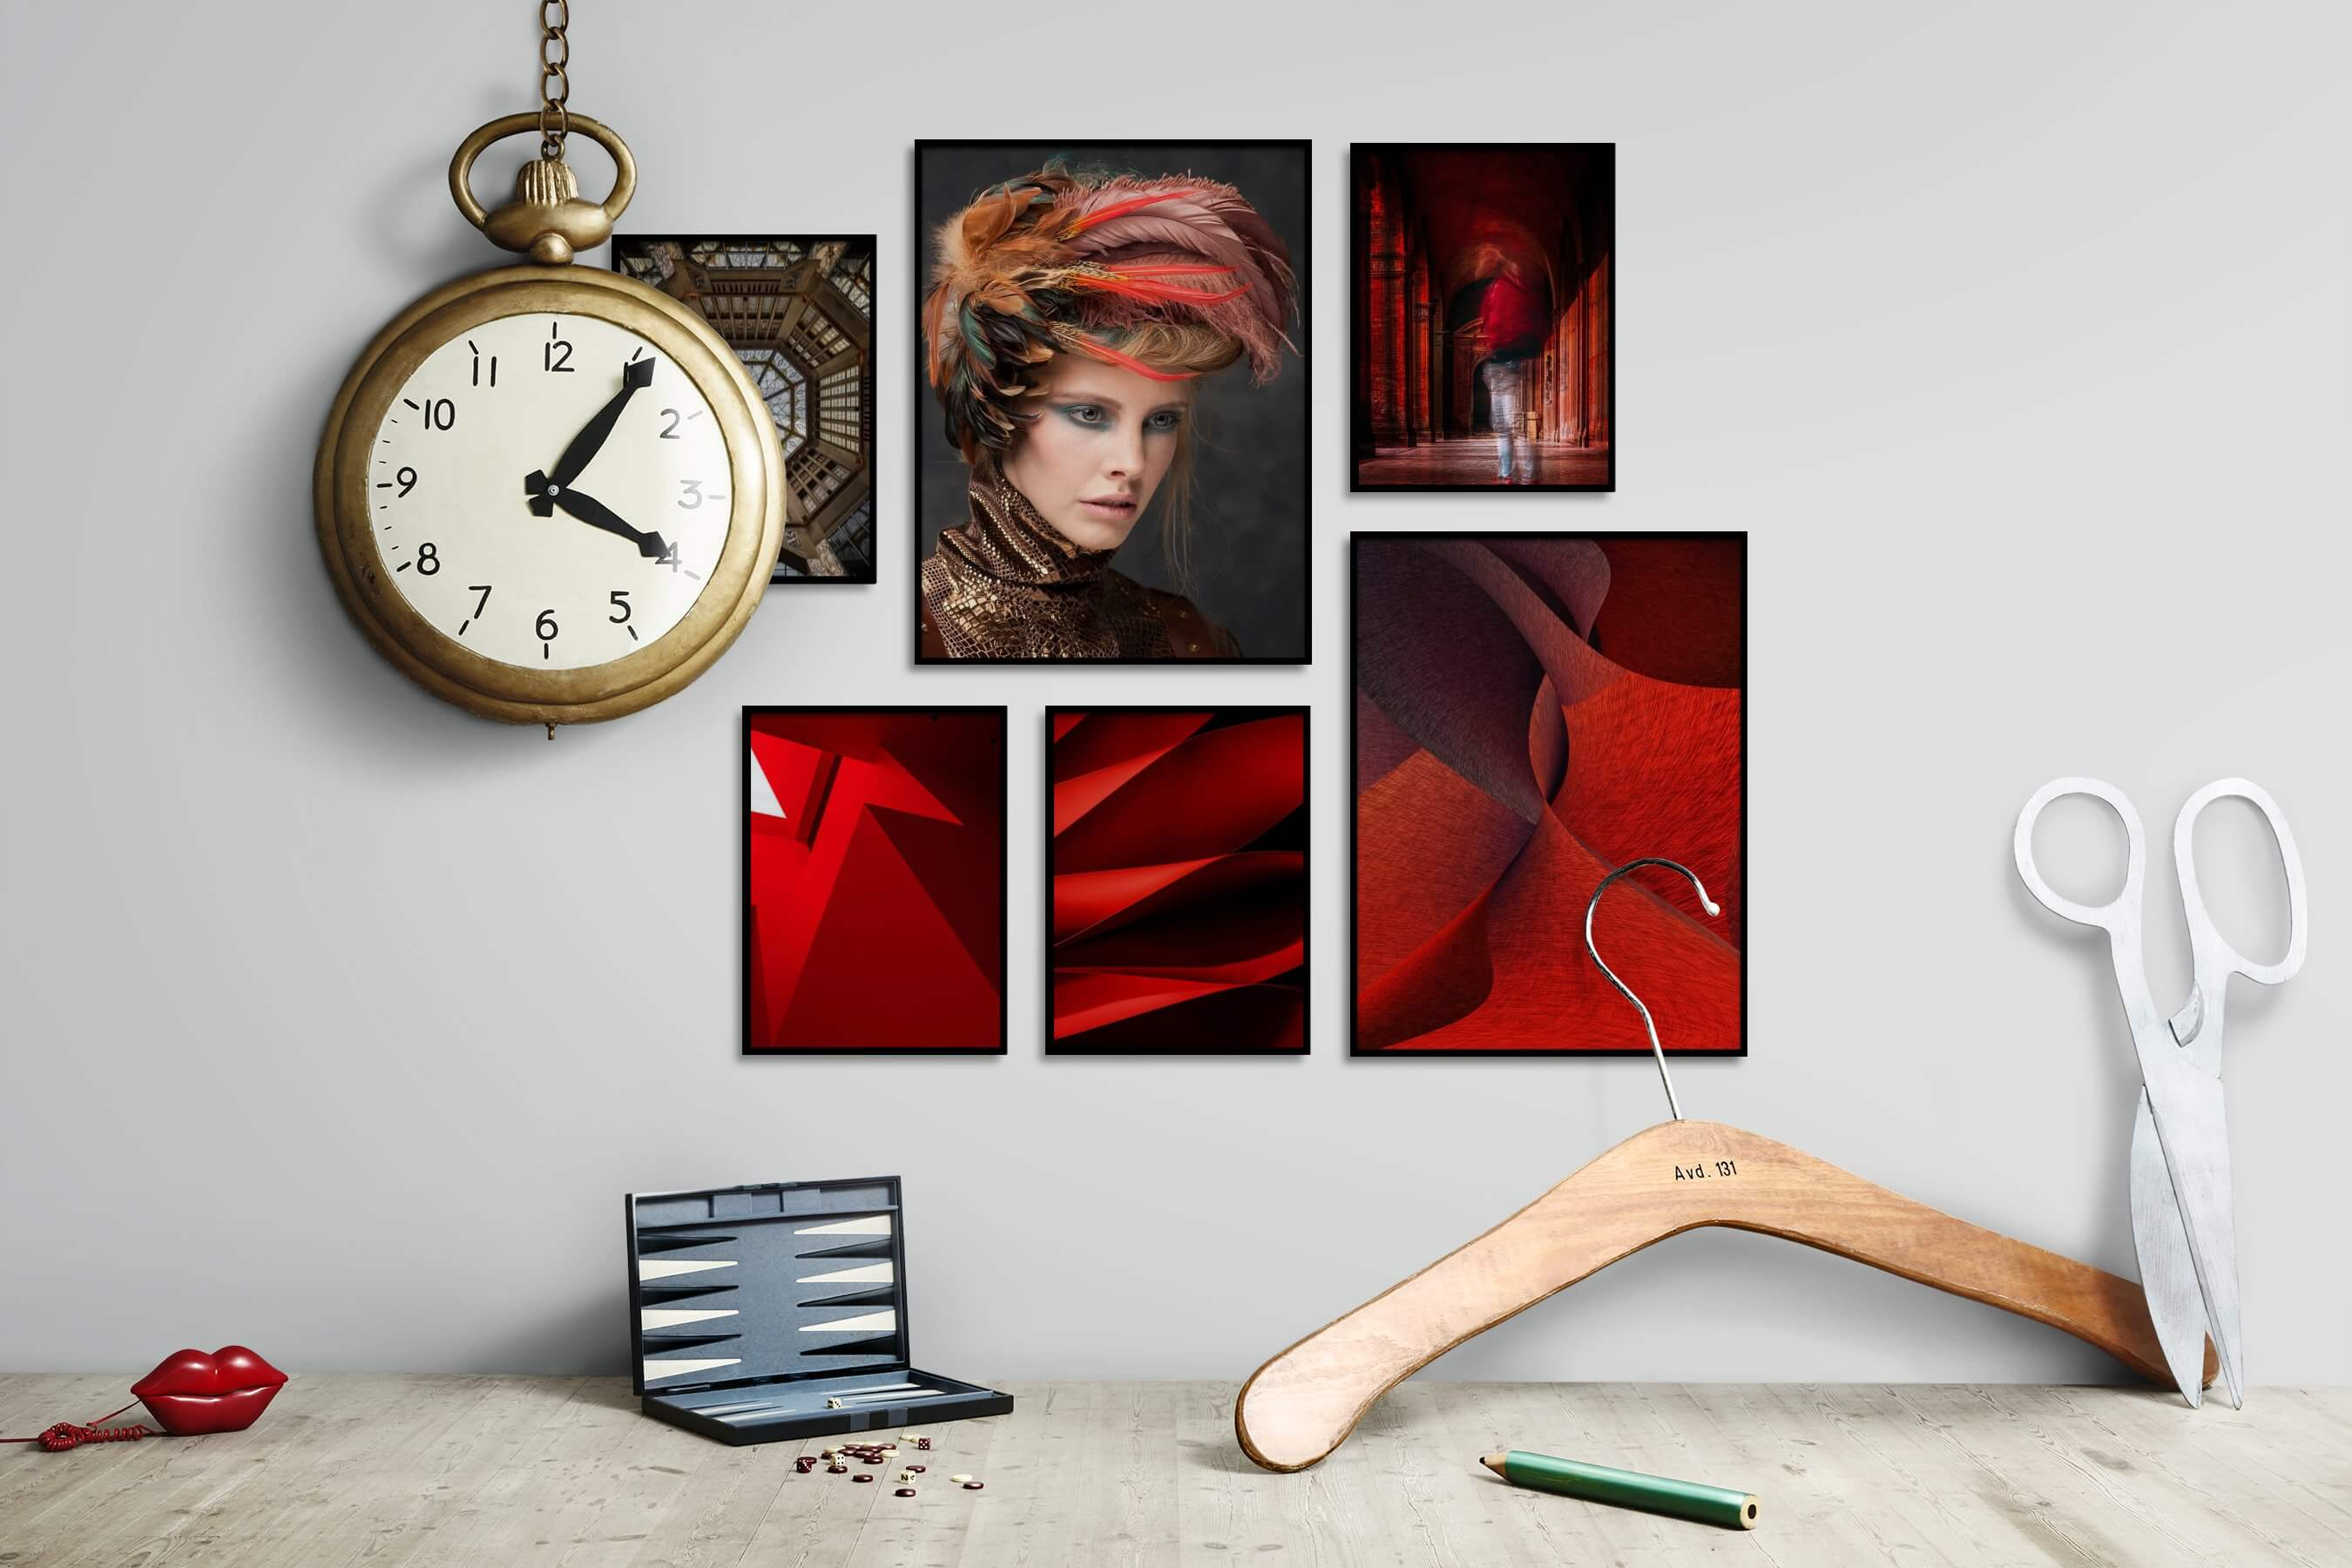 Gallery wall idea with six framed pictures arranged on a wall depicting For the Maximalist, Vintage, Fashion & Beauty, Colorful, For the Moderate, and Artsy